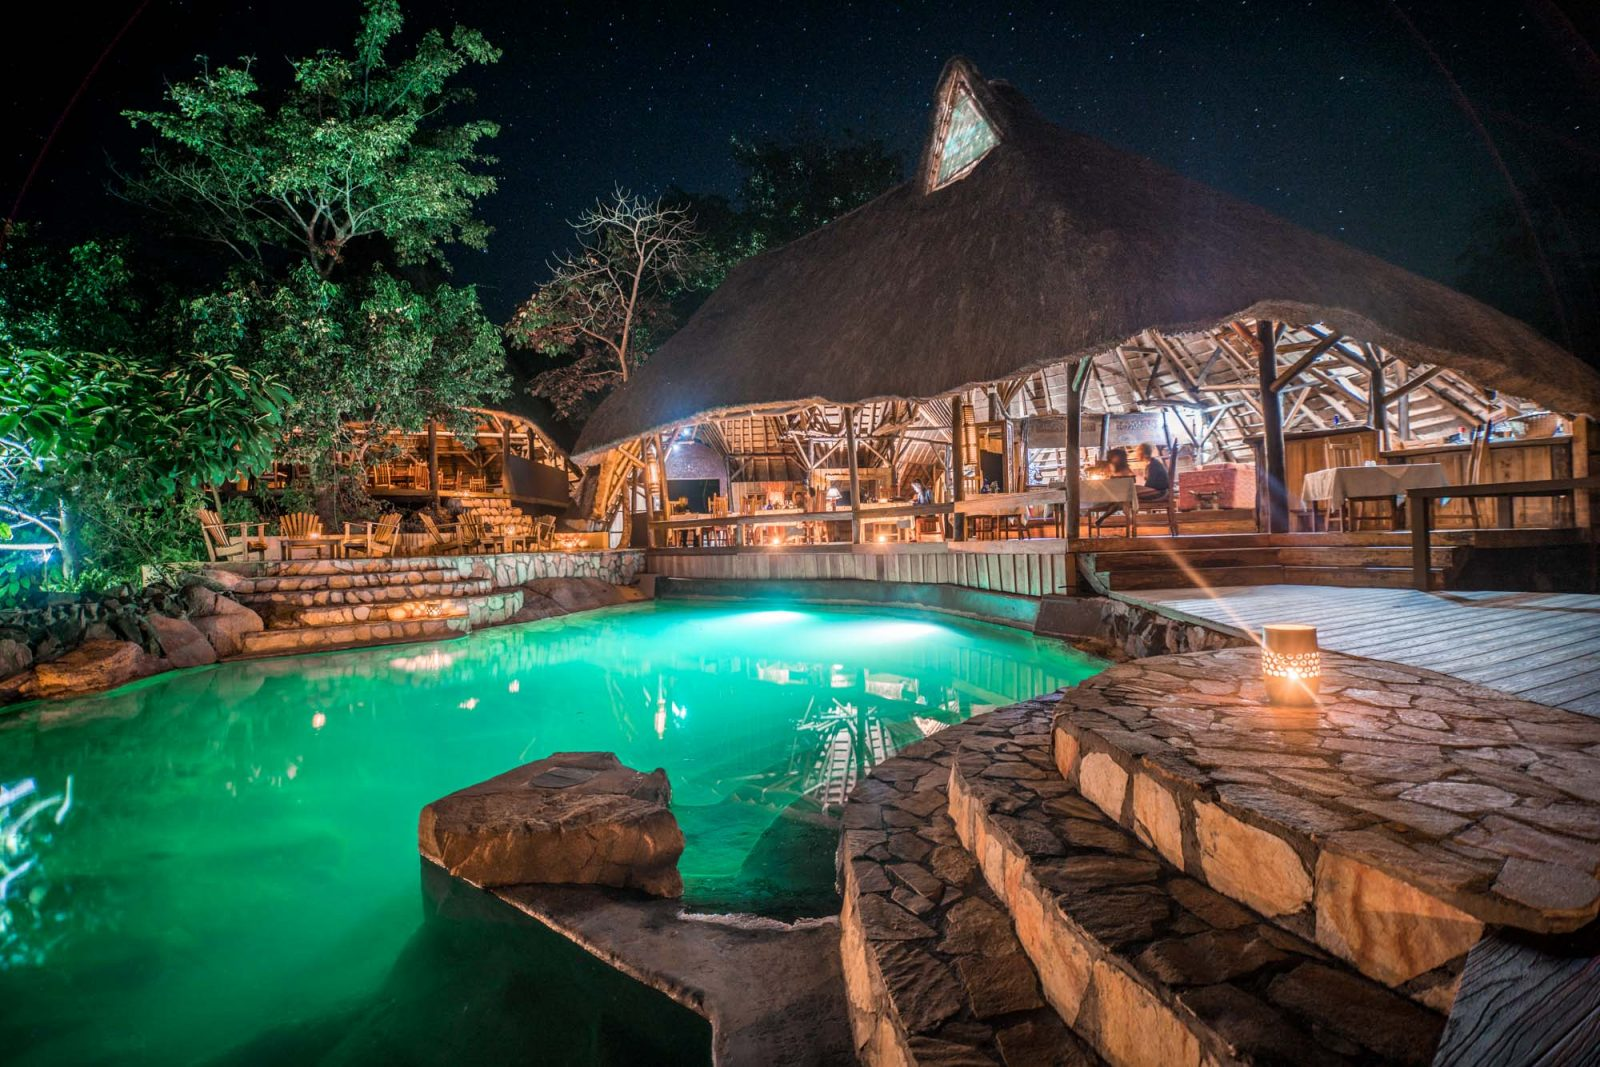 Poolside dinner under the stars at the Wildwaters Lodge